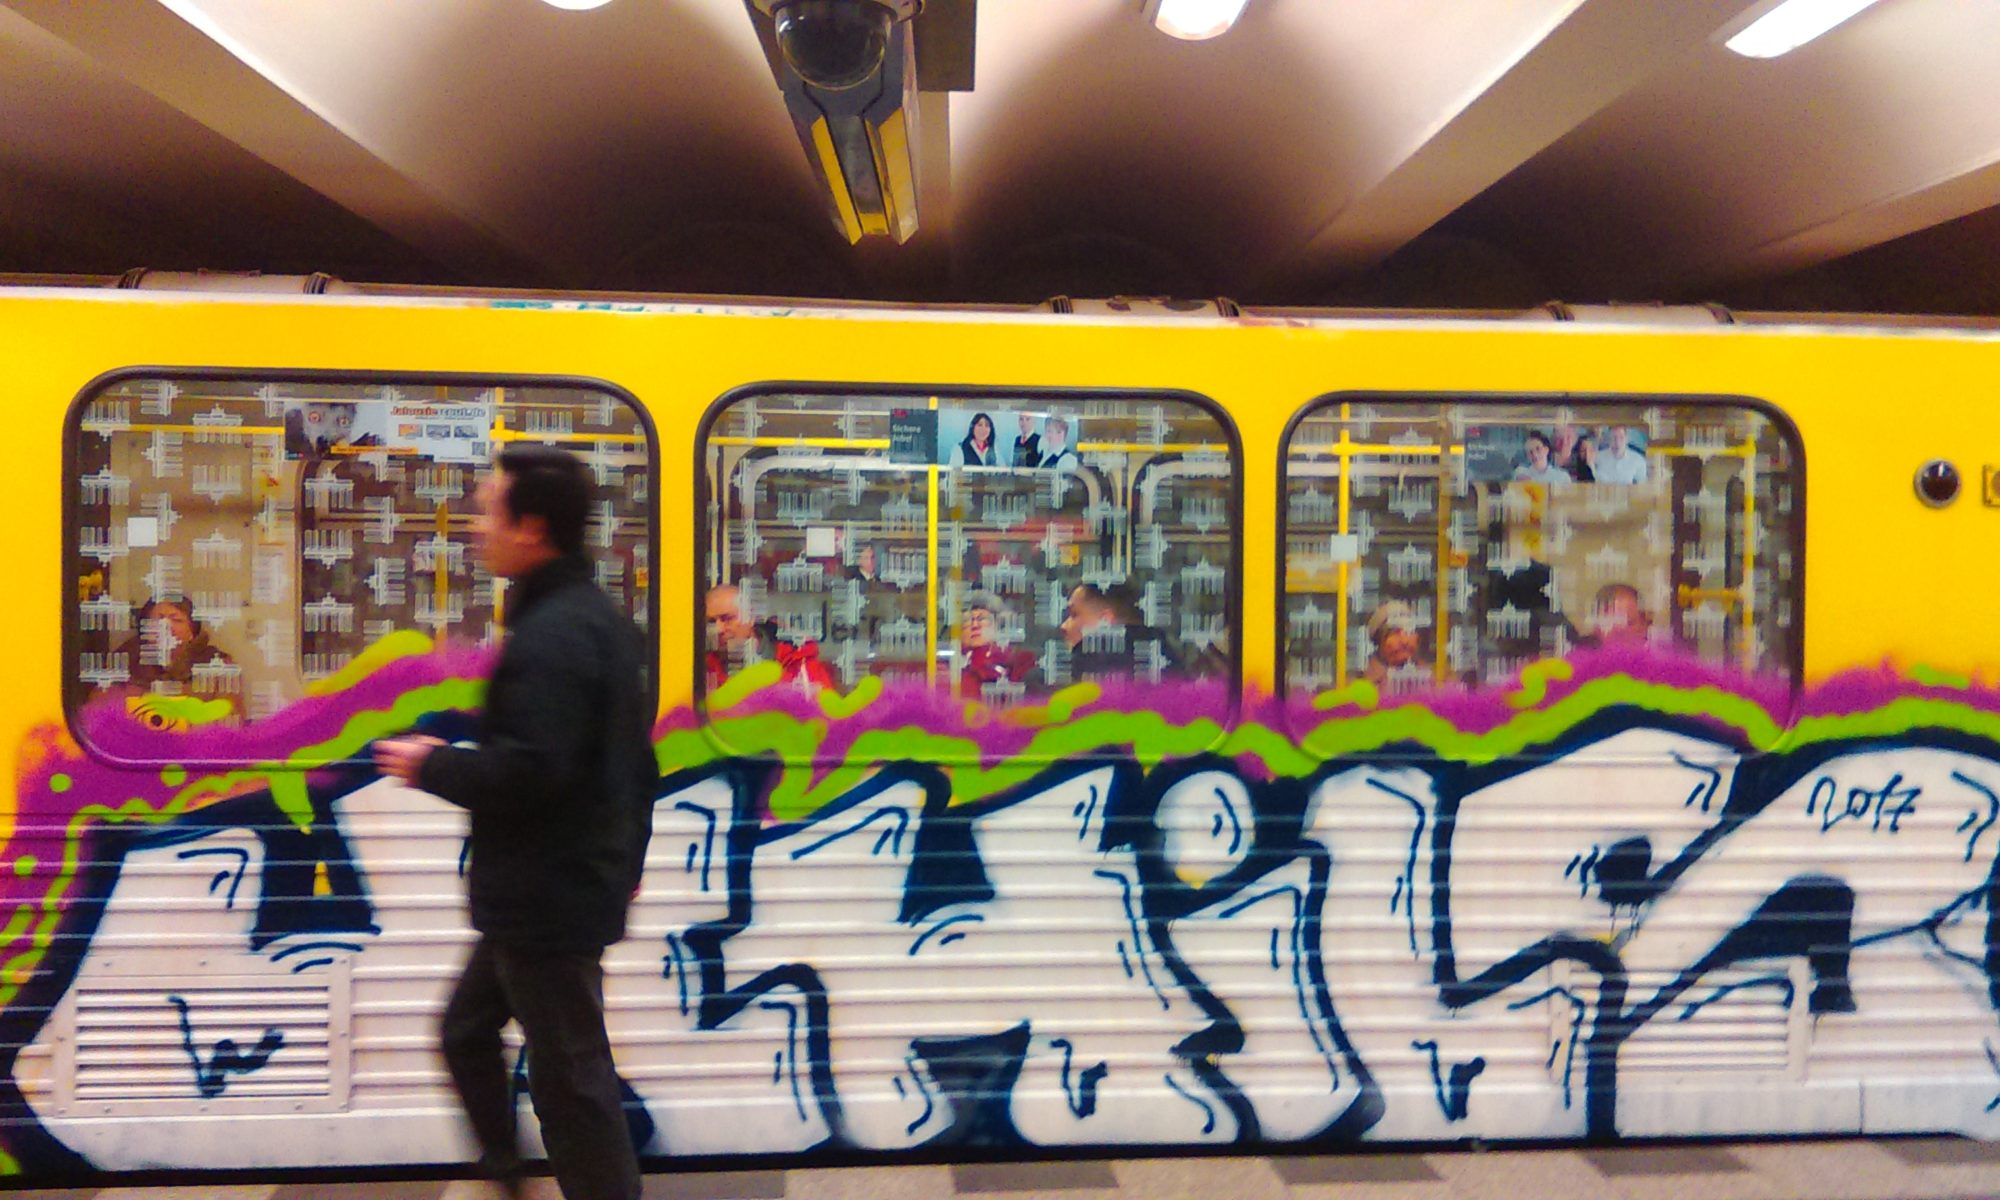 A person walks by the UCHILS Graffiti Bombing on the yellow panel of the Berlin Metro.